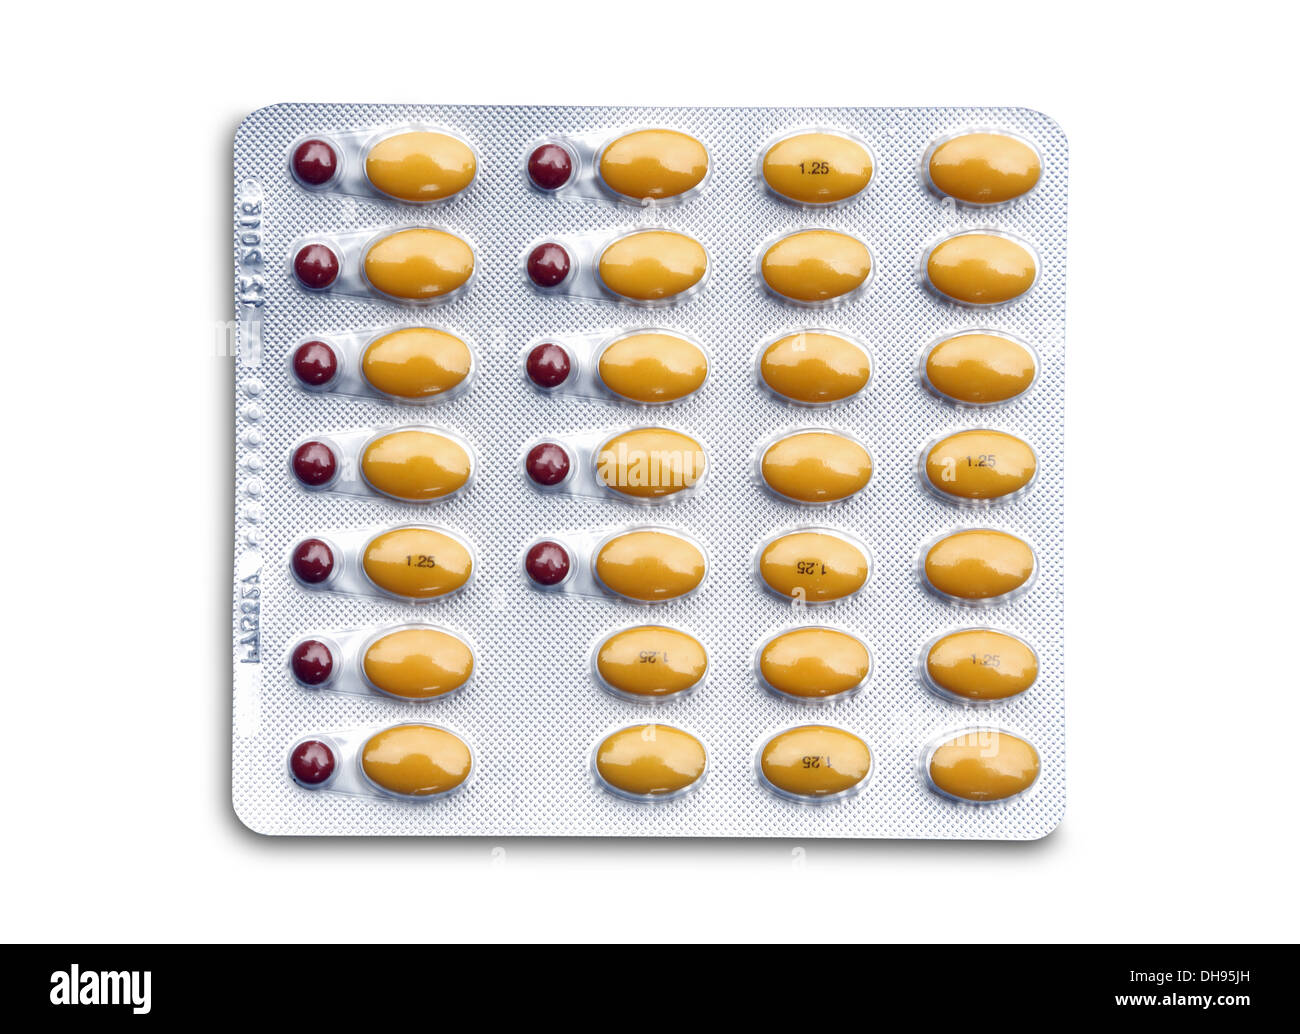 Prempak is a hormone replacement therapy (HRT) preparation. - Stock Image